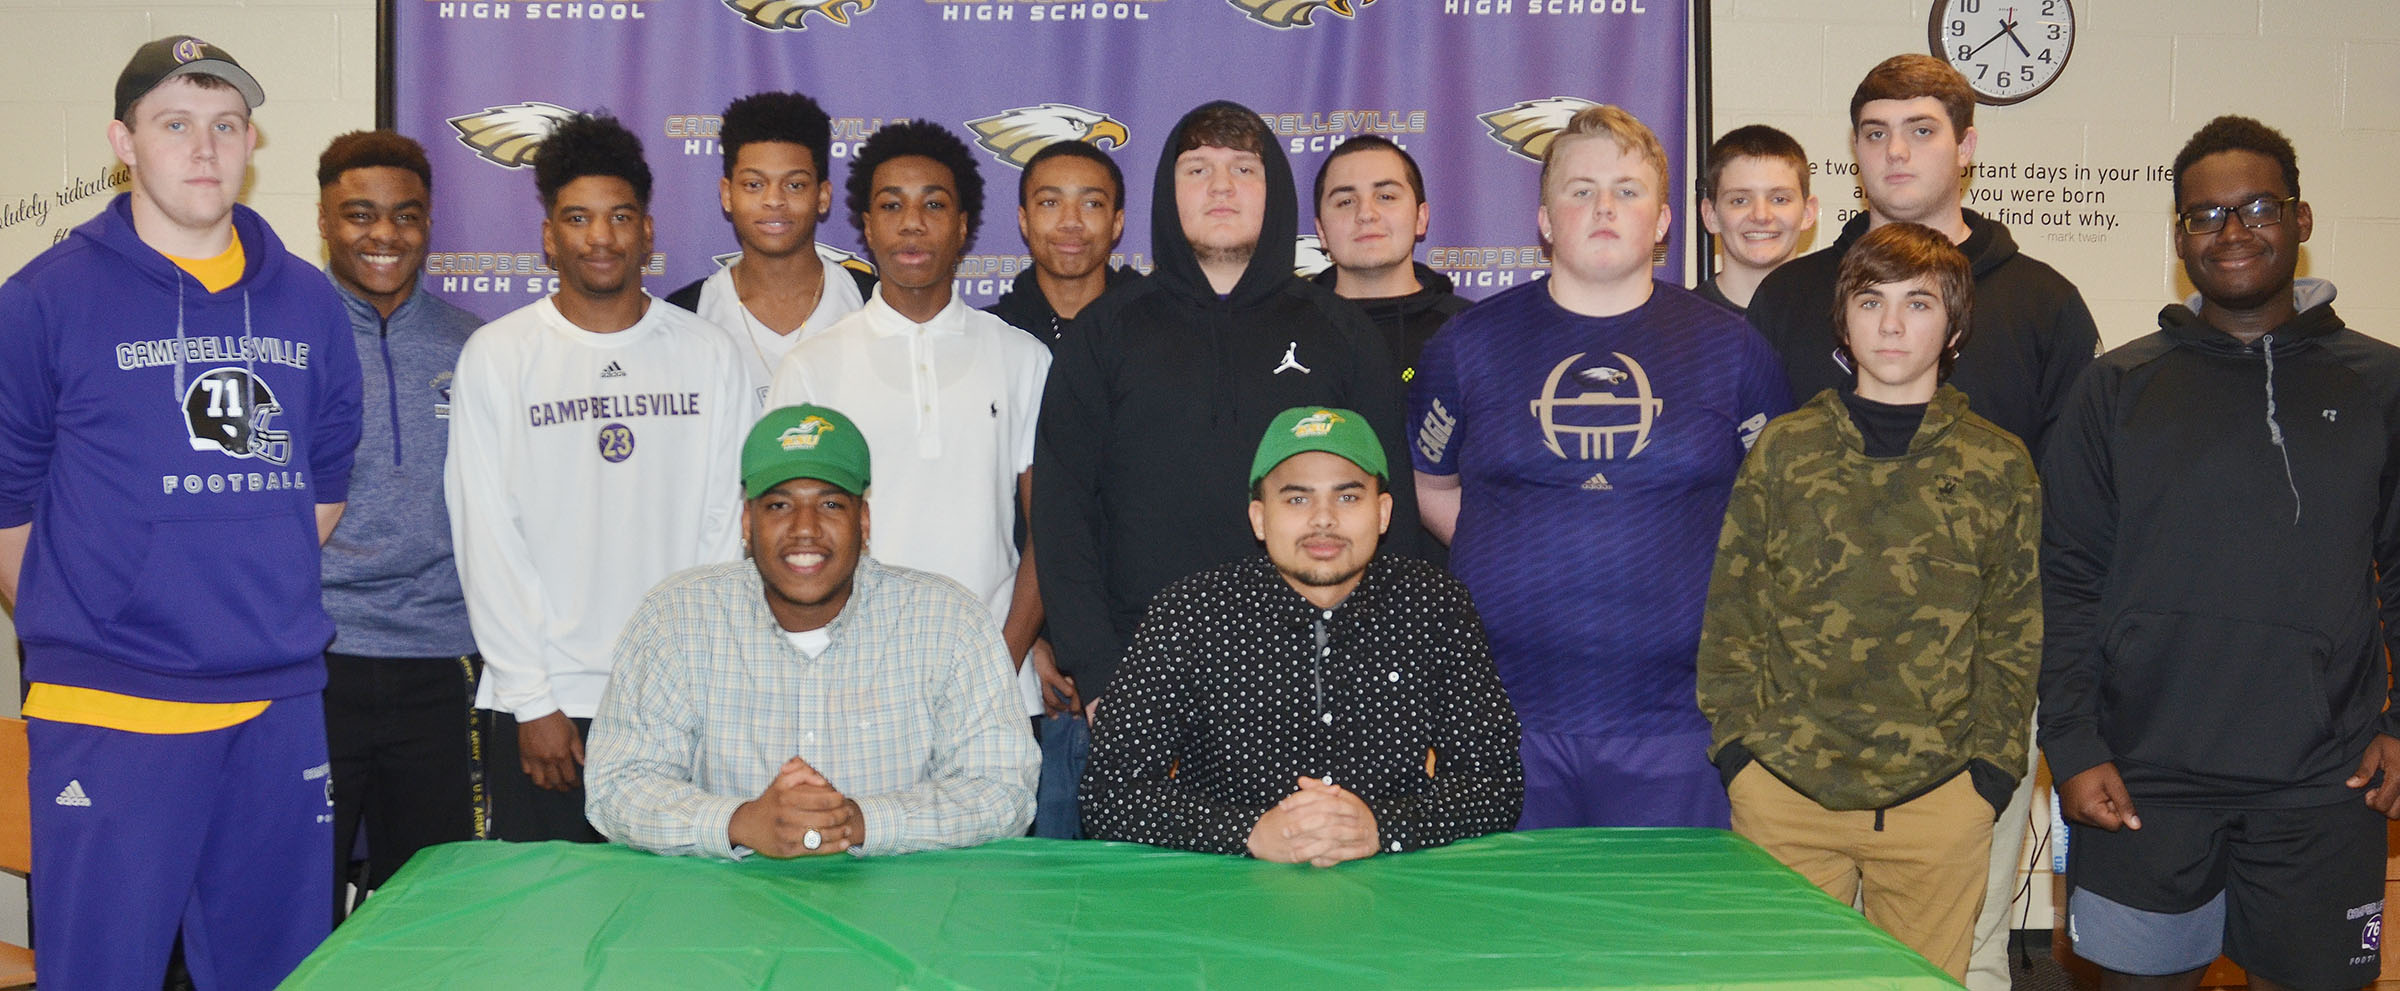 CHS seniors Micah Corley and Arick Groves will continue their academic and football careers at Kentucky State University this fall. The two signed their letters of intent in a special ceremony on Monday, Feb. 6. Pictured with Corley, front, at left, and Groves are their football teammates. Back, from left, senior Jared Brewster, sophomore Charlie Pettigrew, juniors Tyrion Taylor and Devonte Cubit, freshman Malachi Corley, who is Corley's brother, freshman Lathan Cubit, senior Donnie Osinger, former CHS junior Josh Tamez, junior Ryan Jeffries, freshman Blake Allen, sophomore Lane Bottoms, junior Austin Carter and freshman Taekwon McCoy.